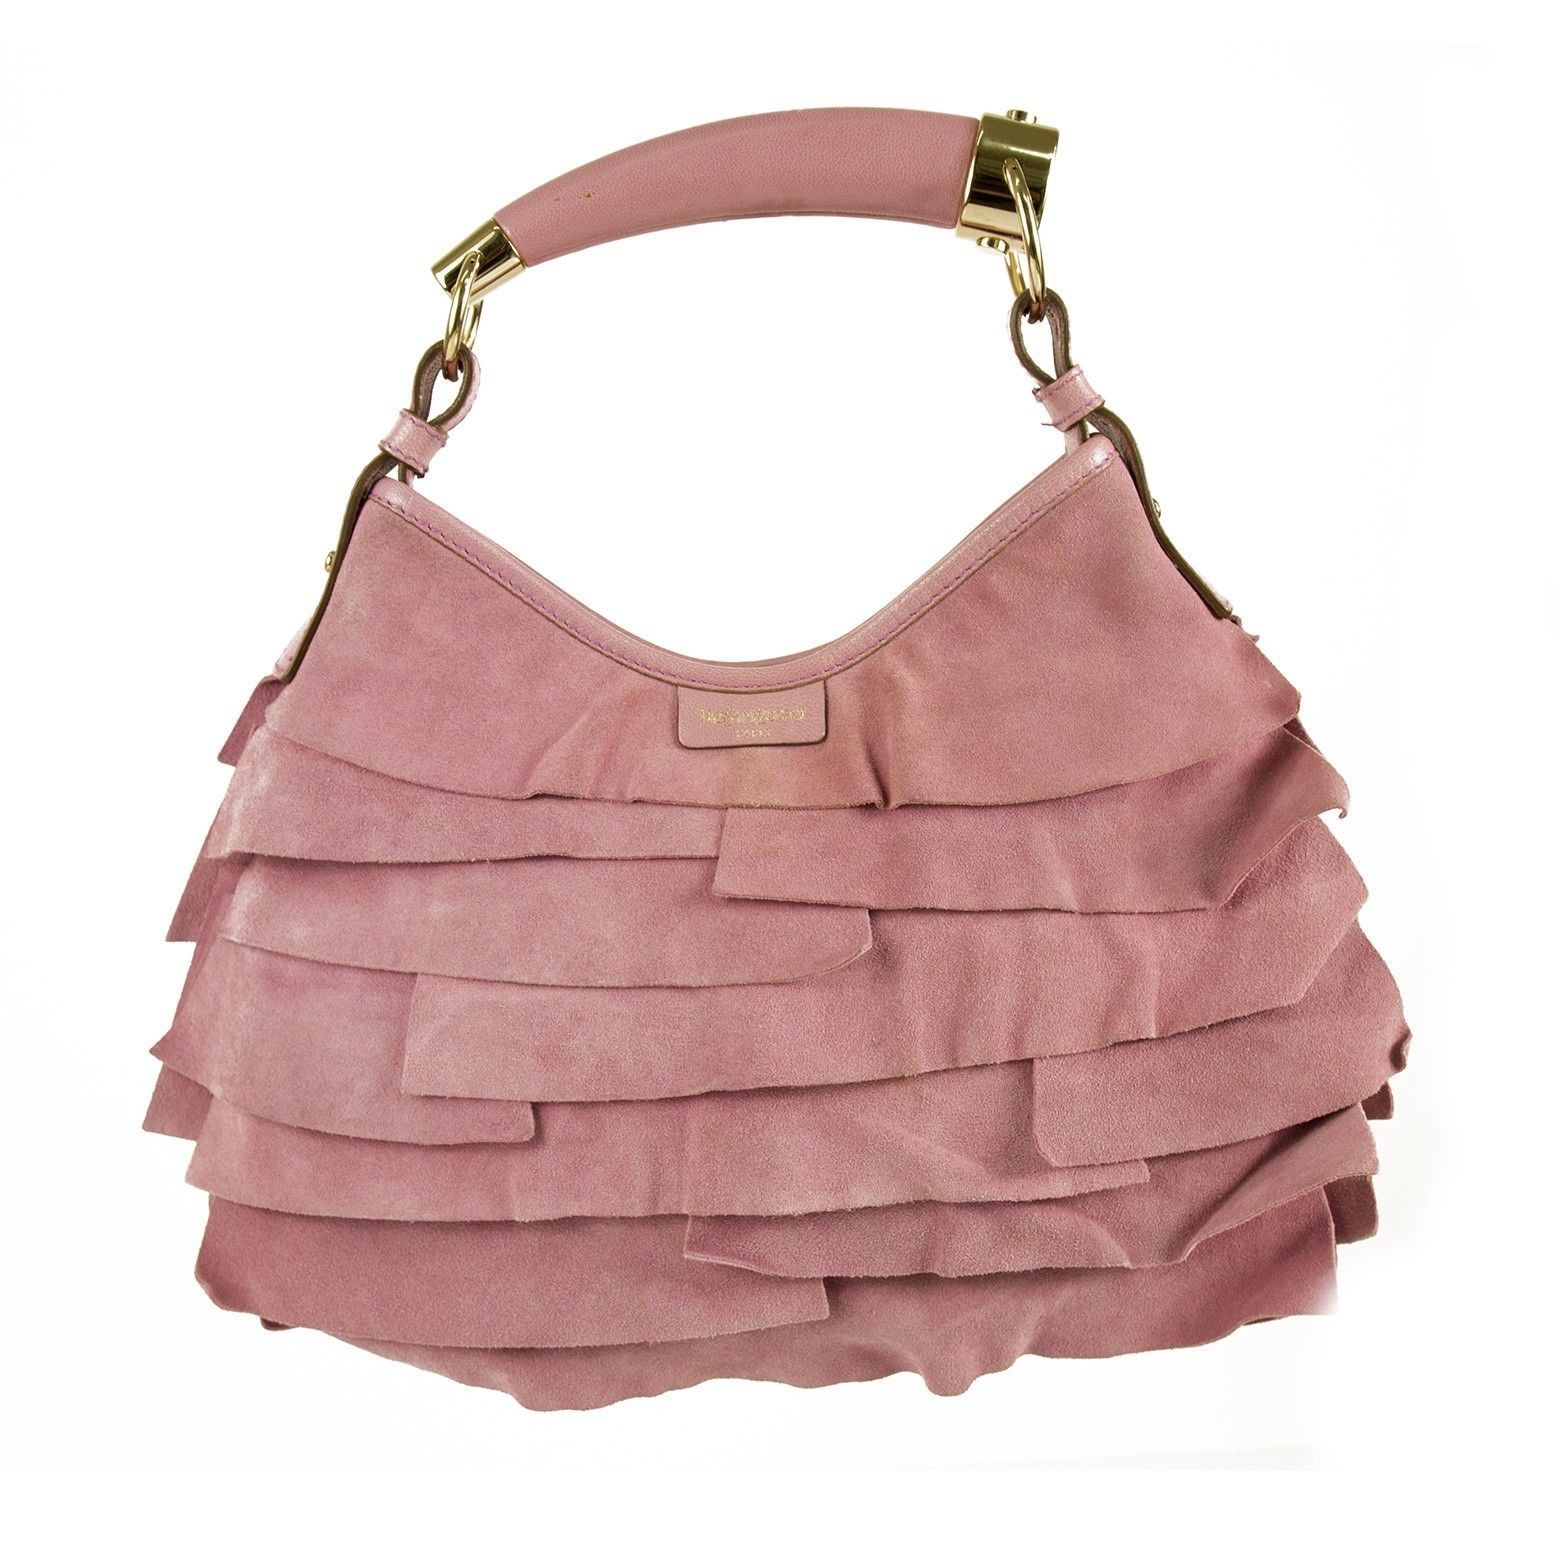 93cfeedec84 S l1600. S l1600. Previous. Yves Saint Laurent YSL Pink Suede Leather  Ruffle Mombasa Shoulder Bag Horn Handl